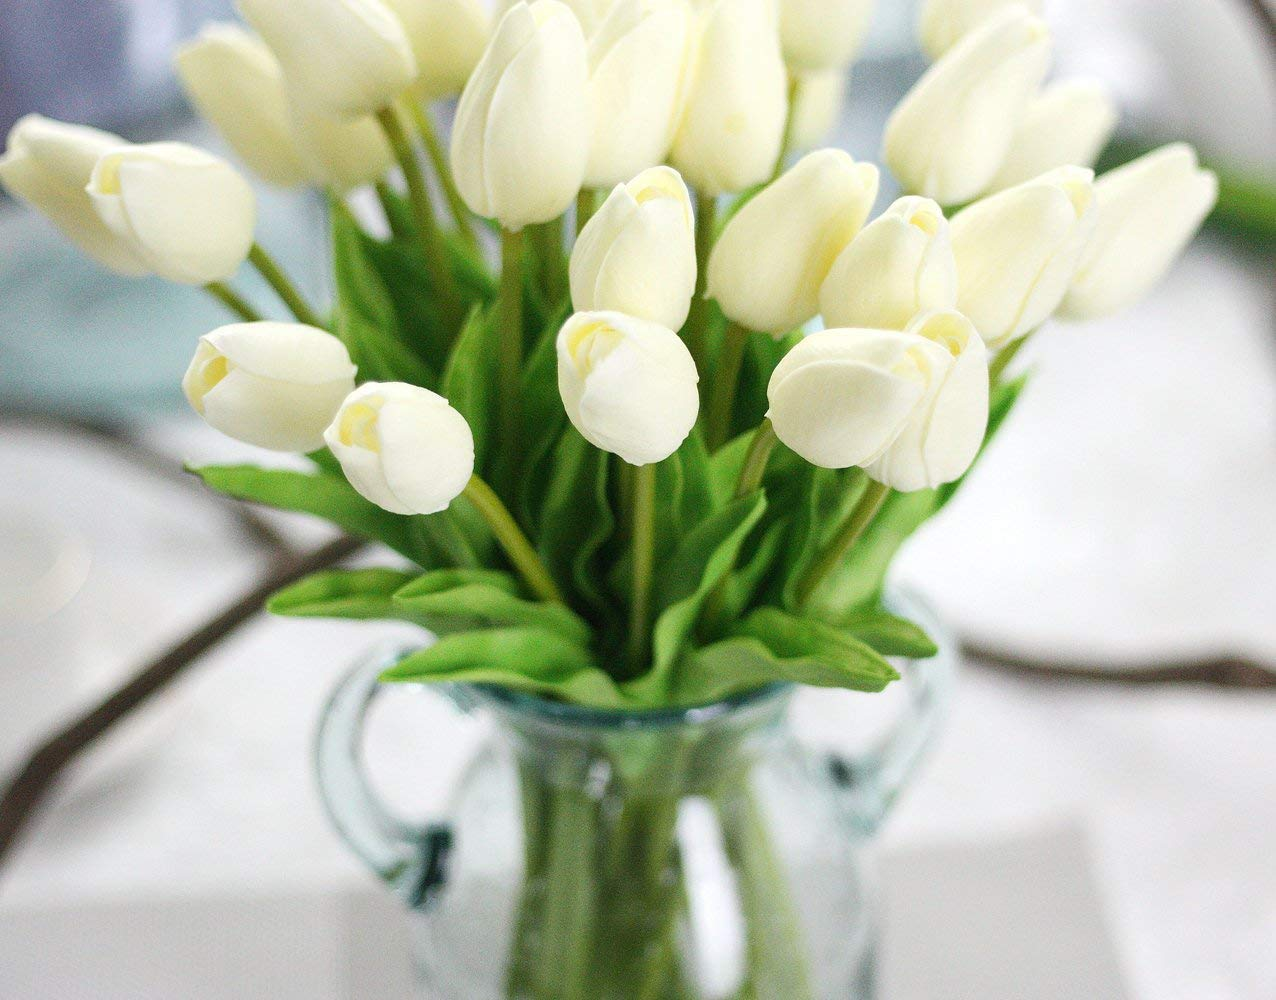 SEEYANG Tulips Artificial Flowers 10 PCS, Fake Flowers PU Small Vintage Décor for Wedding, Home, Party (White)